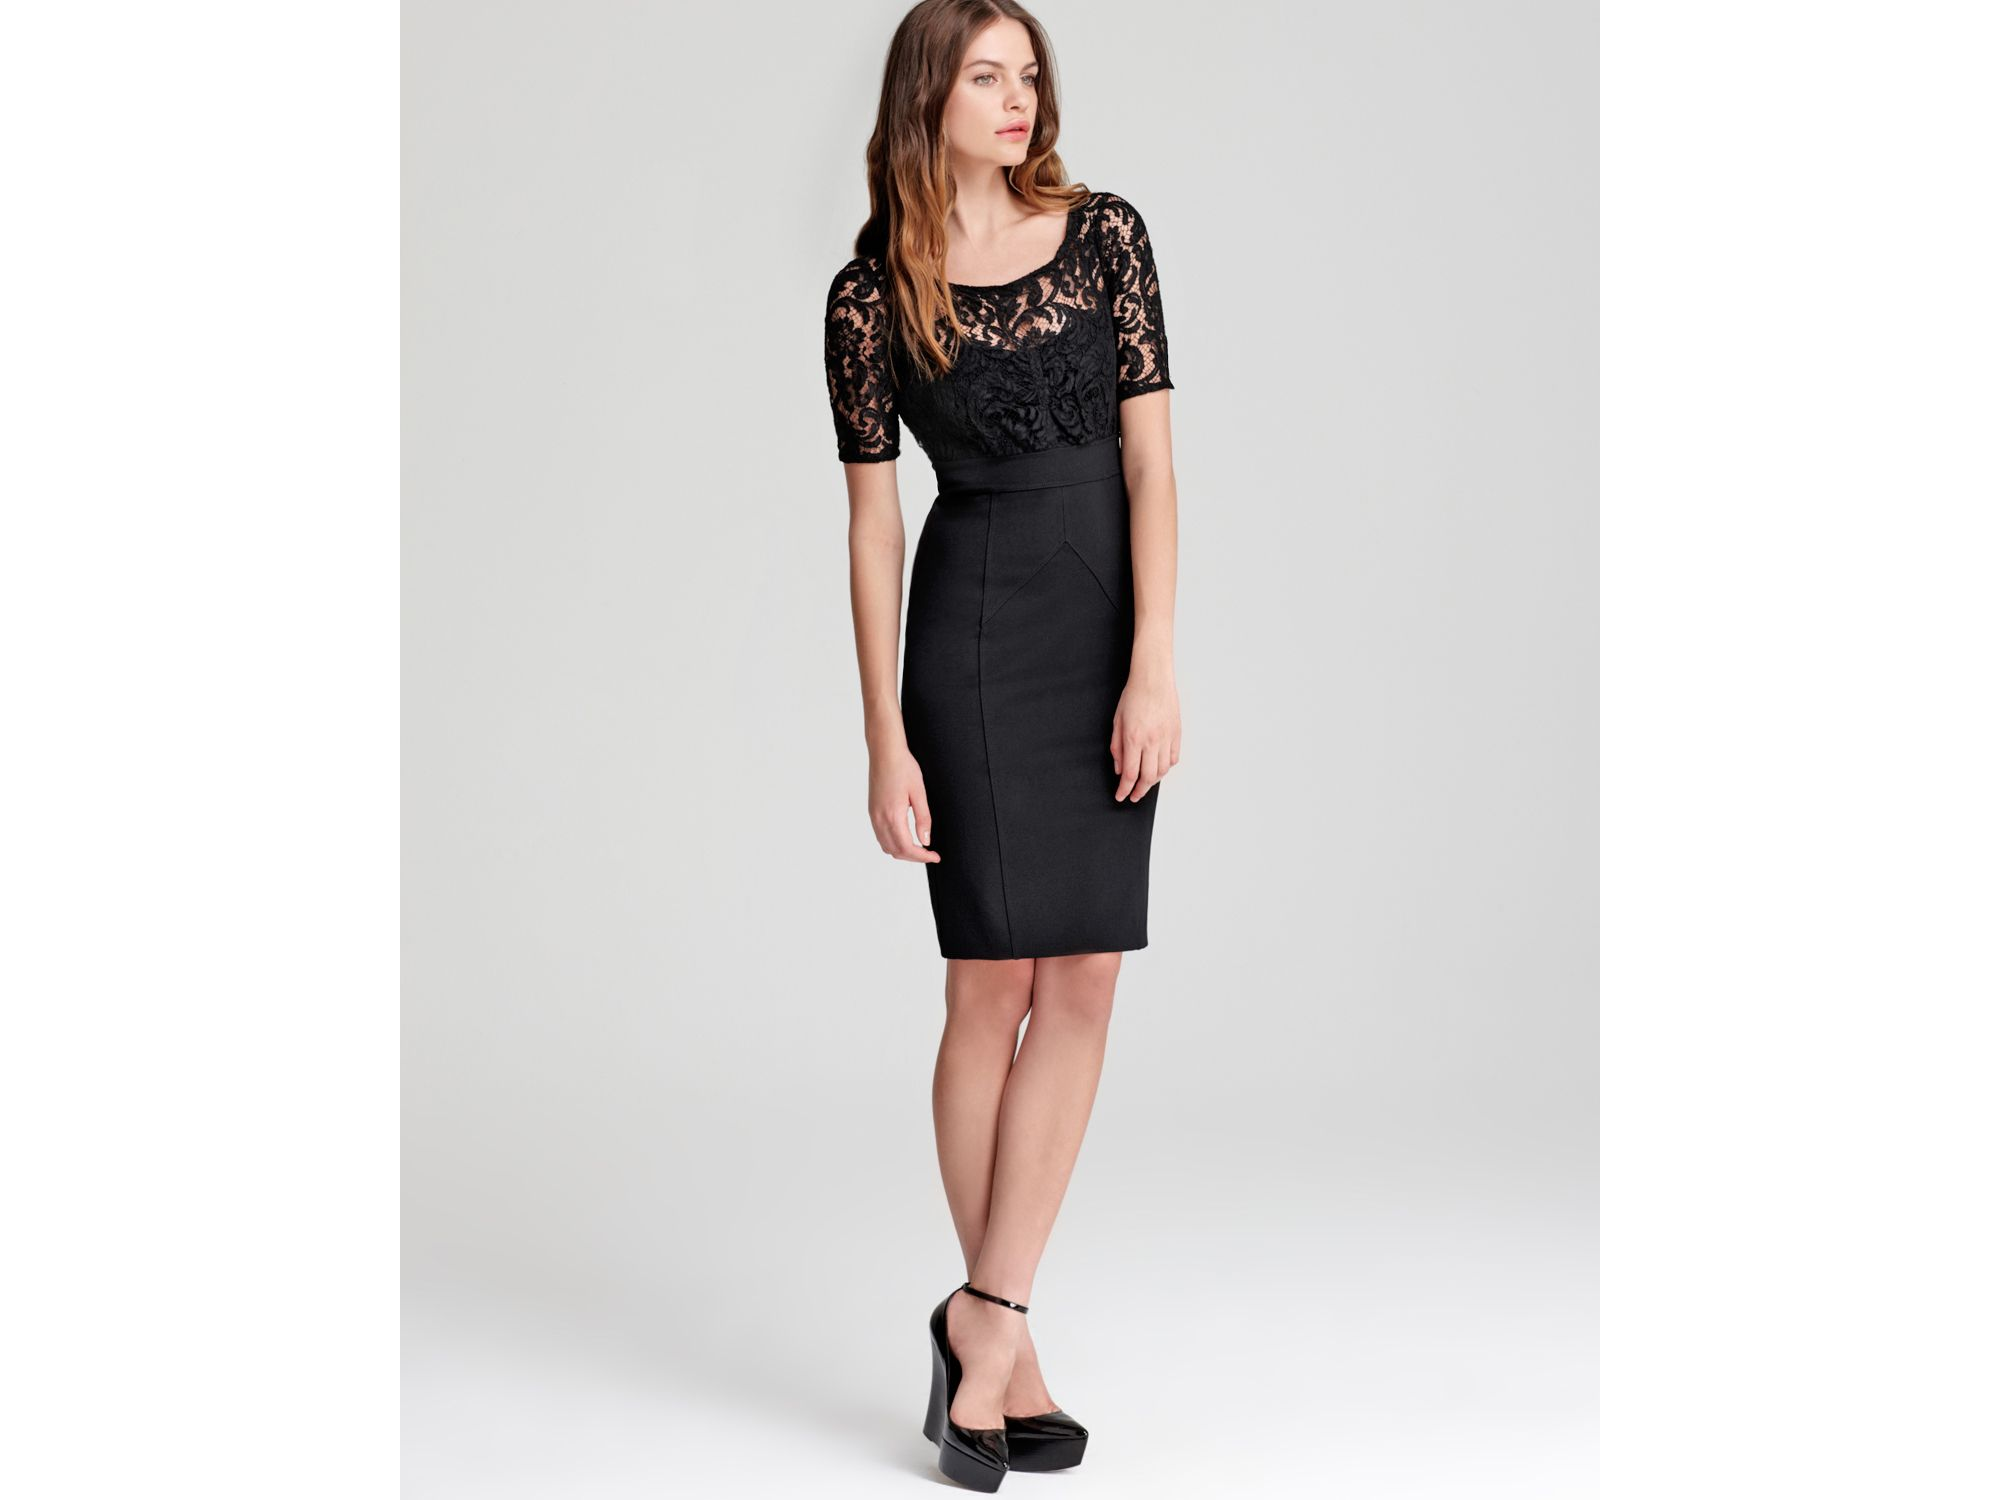 Burberry London Short Sleeve Dress Black Lace Top in Black | Lyst